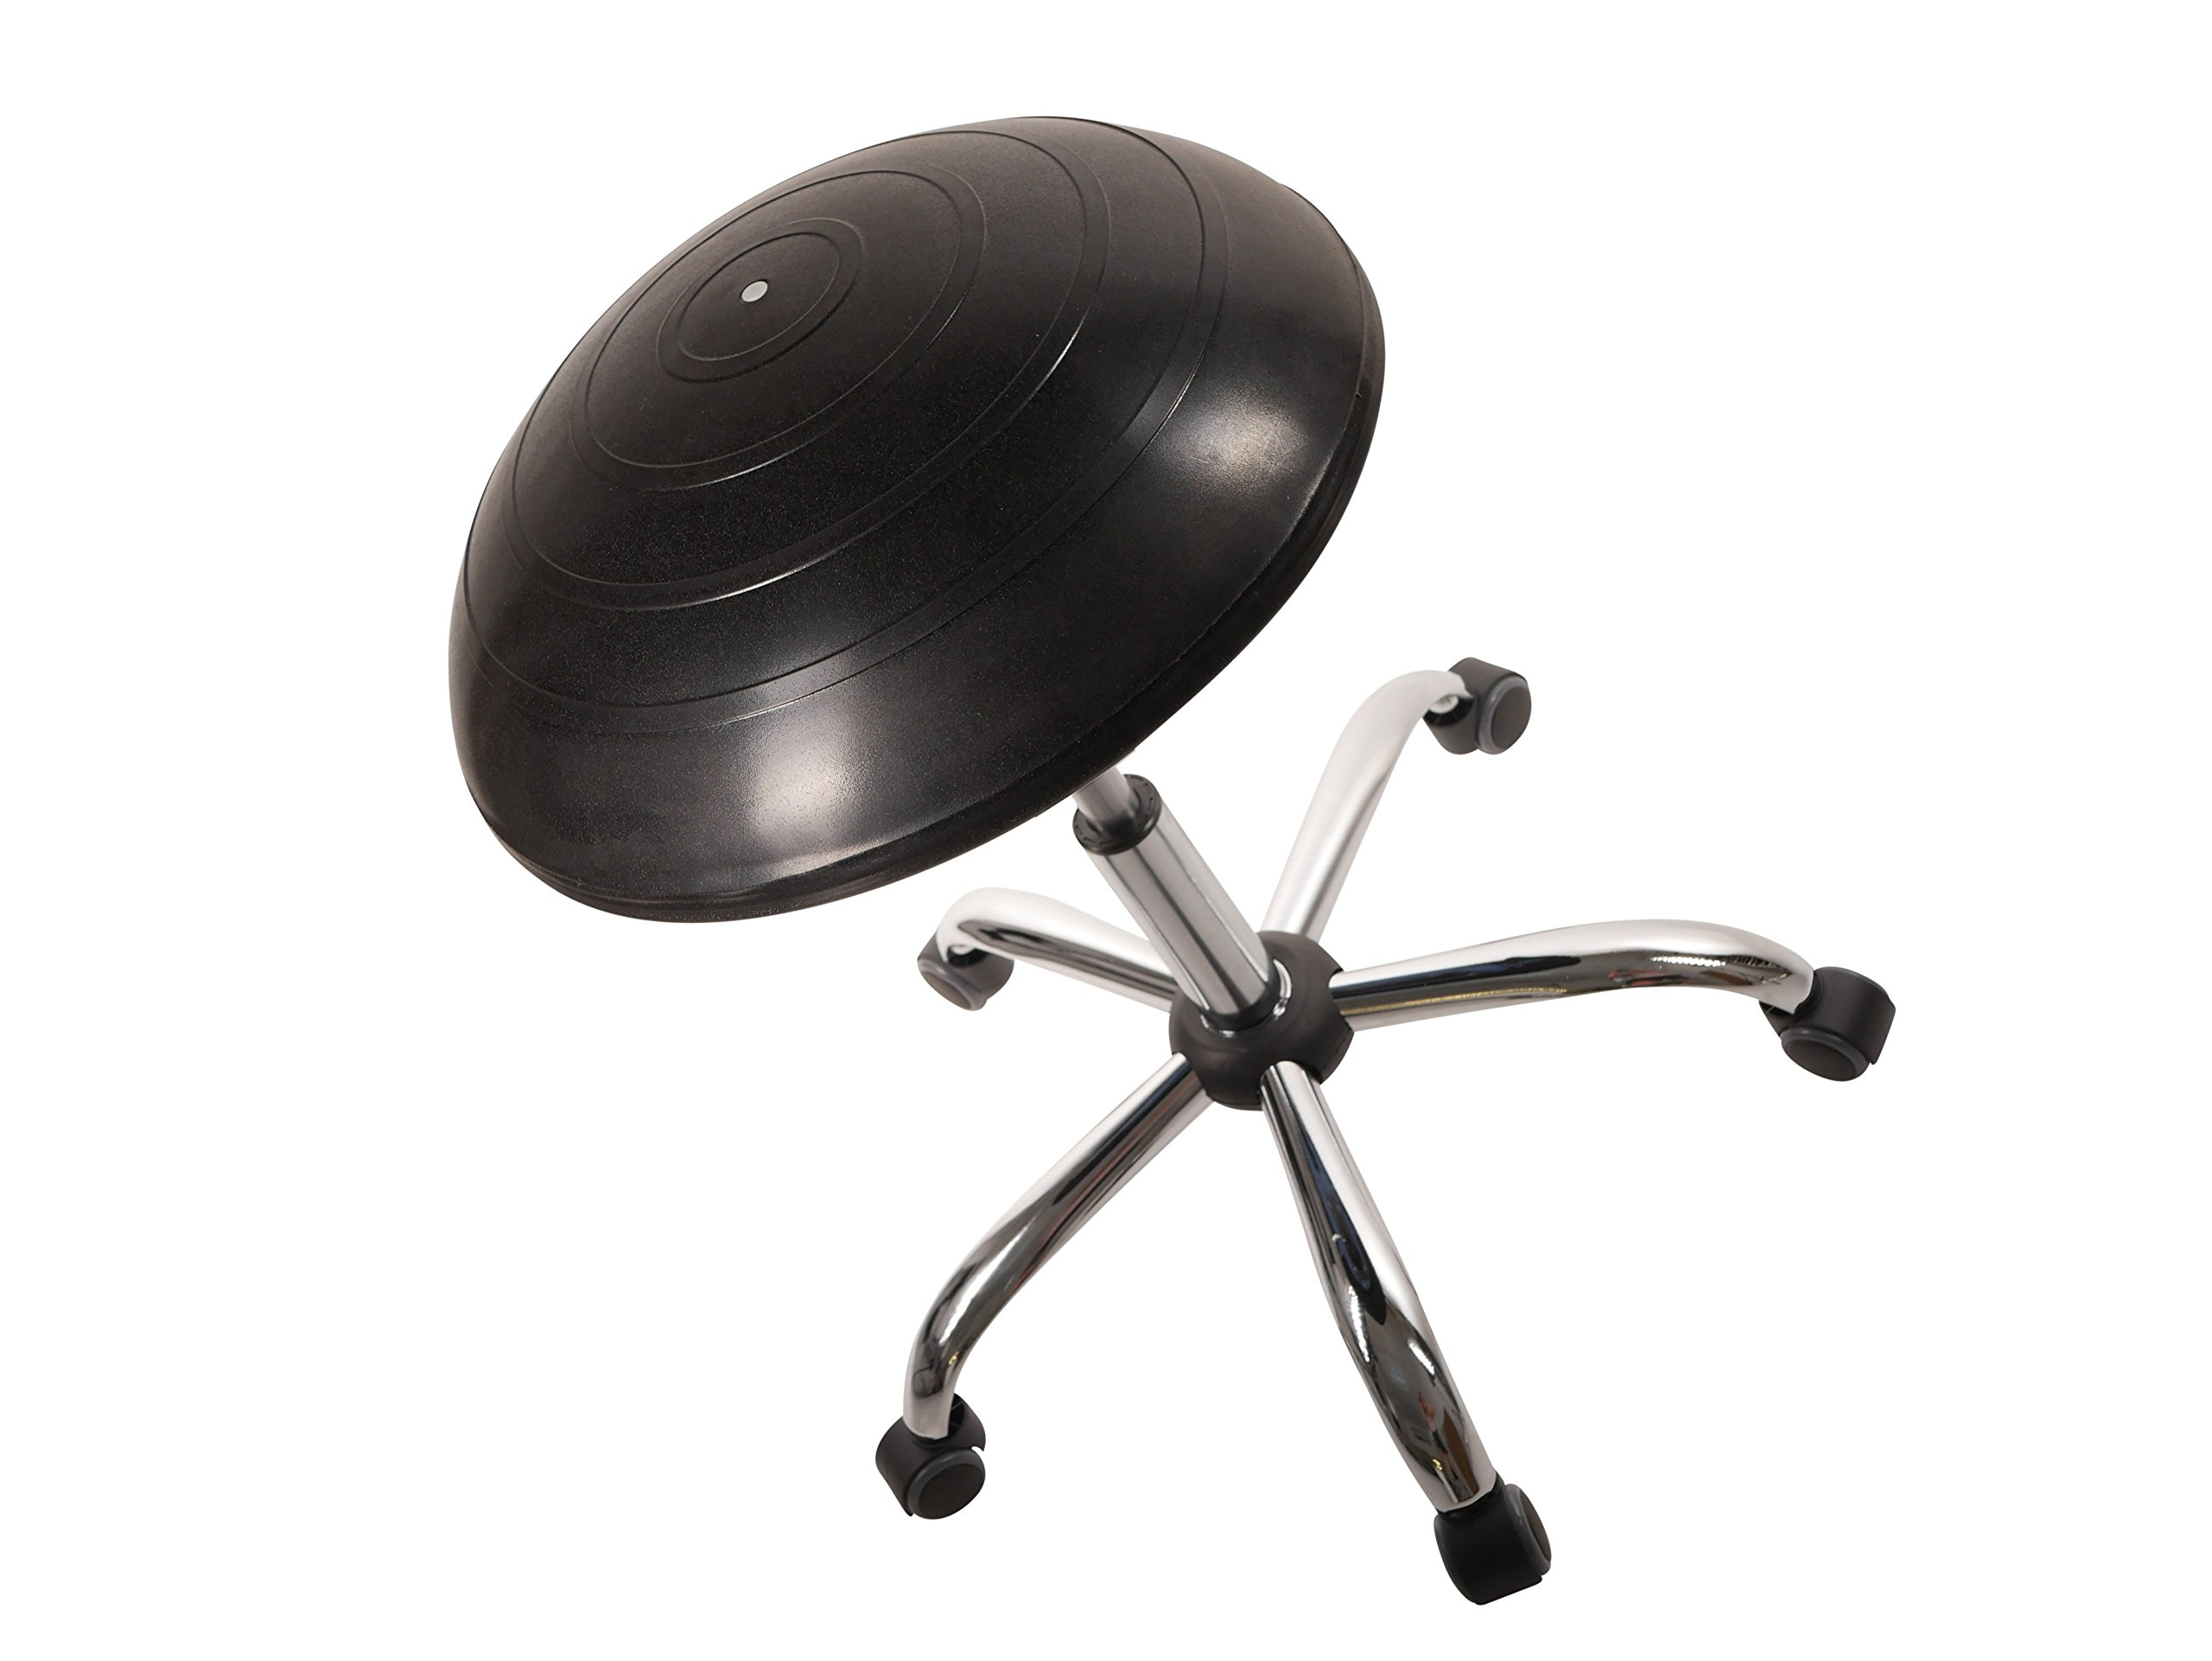 Balance Ball Office Chair Stool, Jellyfish Adjustable Chair by Coreseat | Ergonomic Exercise Office Chair that Provides Stability and Core Strength for the Home, Office or Classroom